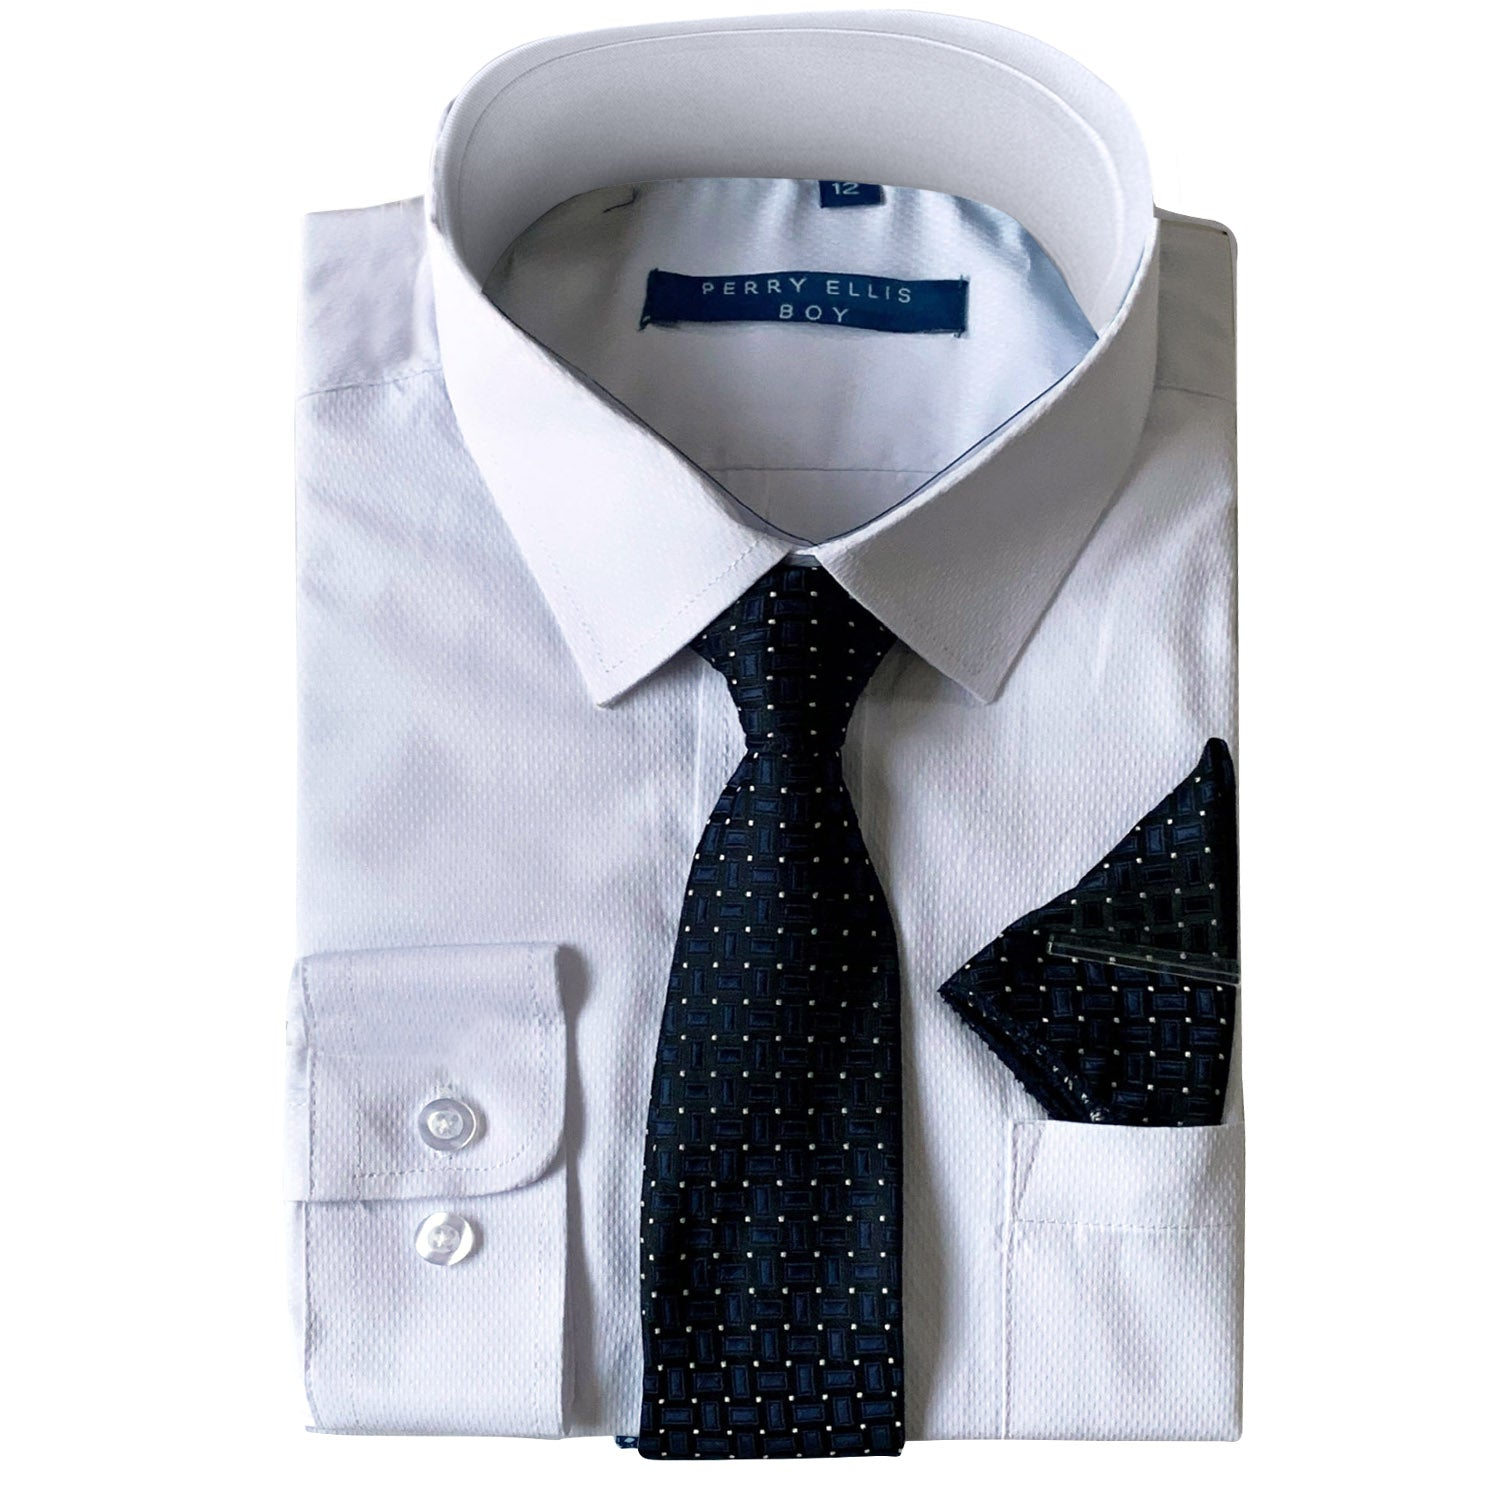 Perry Ellis Boys Dress Shirts w Navy Tie Solid Shirts w Patterned Tie